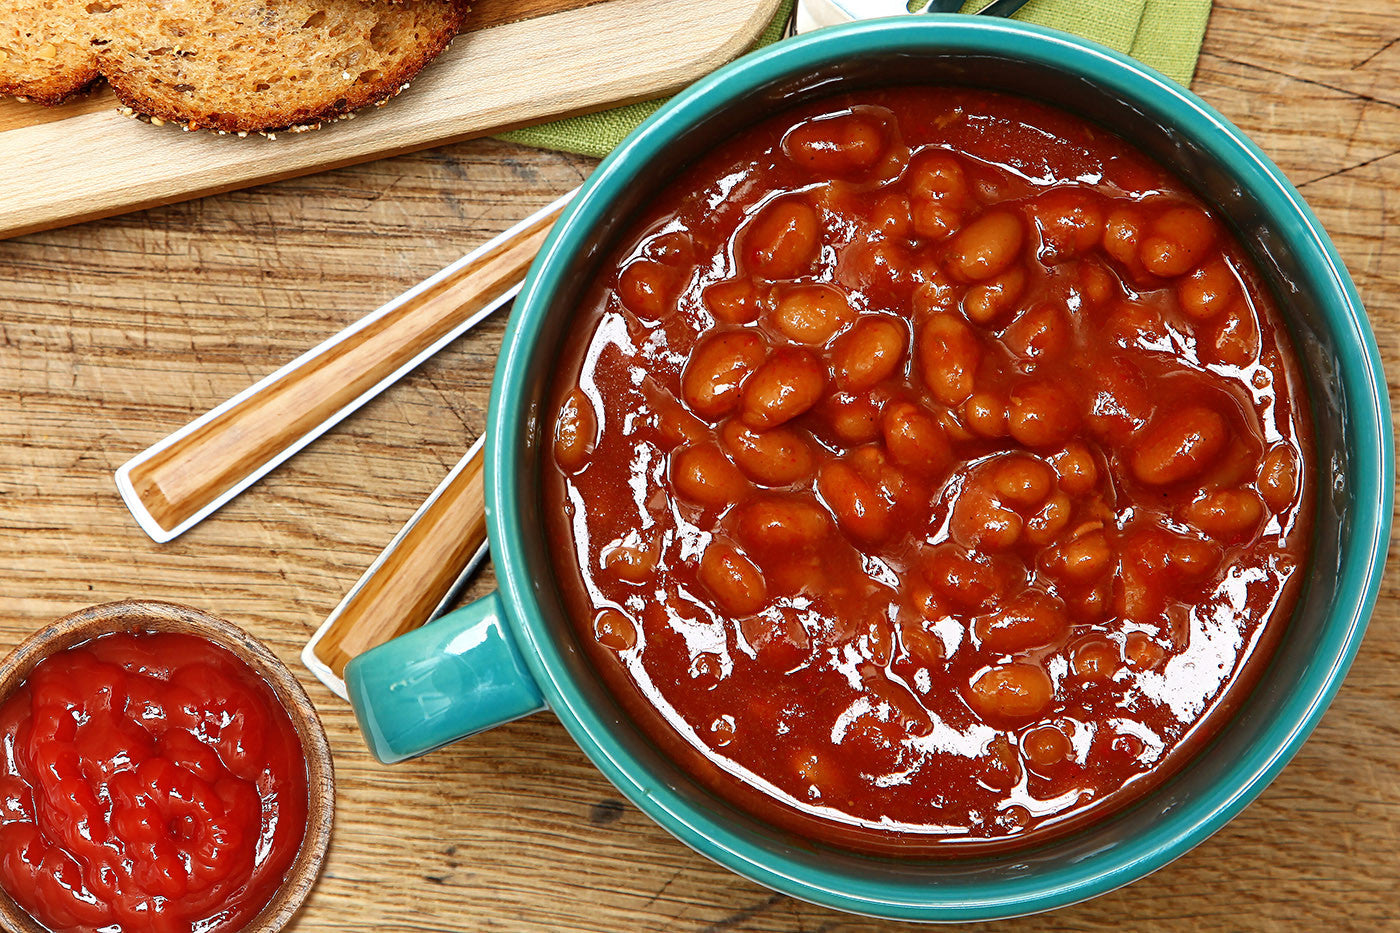 In VitaClay: The Best Baked Beans You've Ever Tasted!